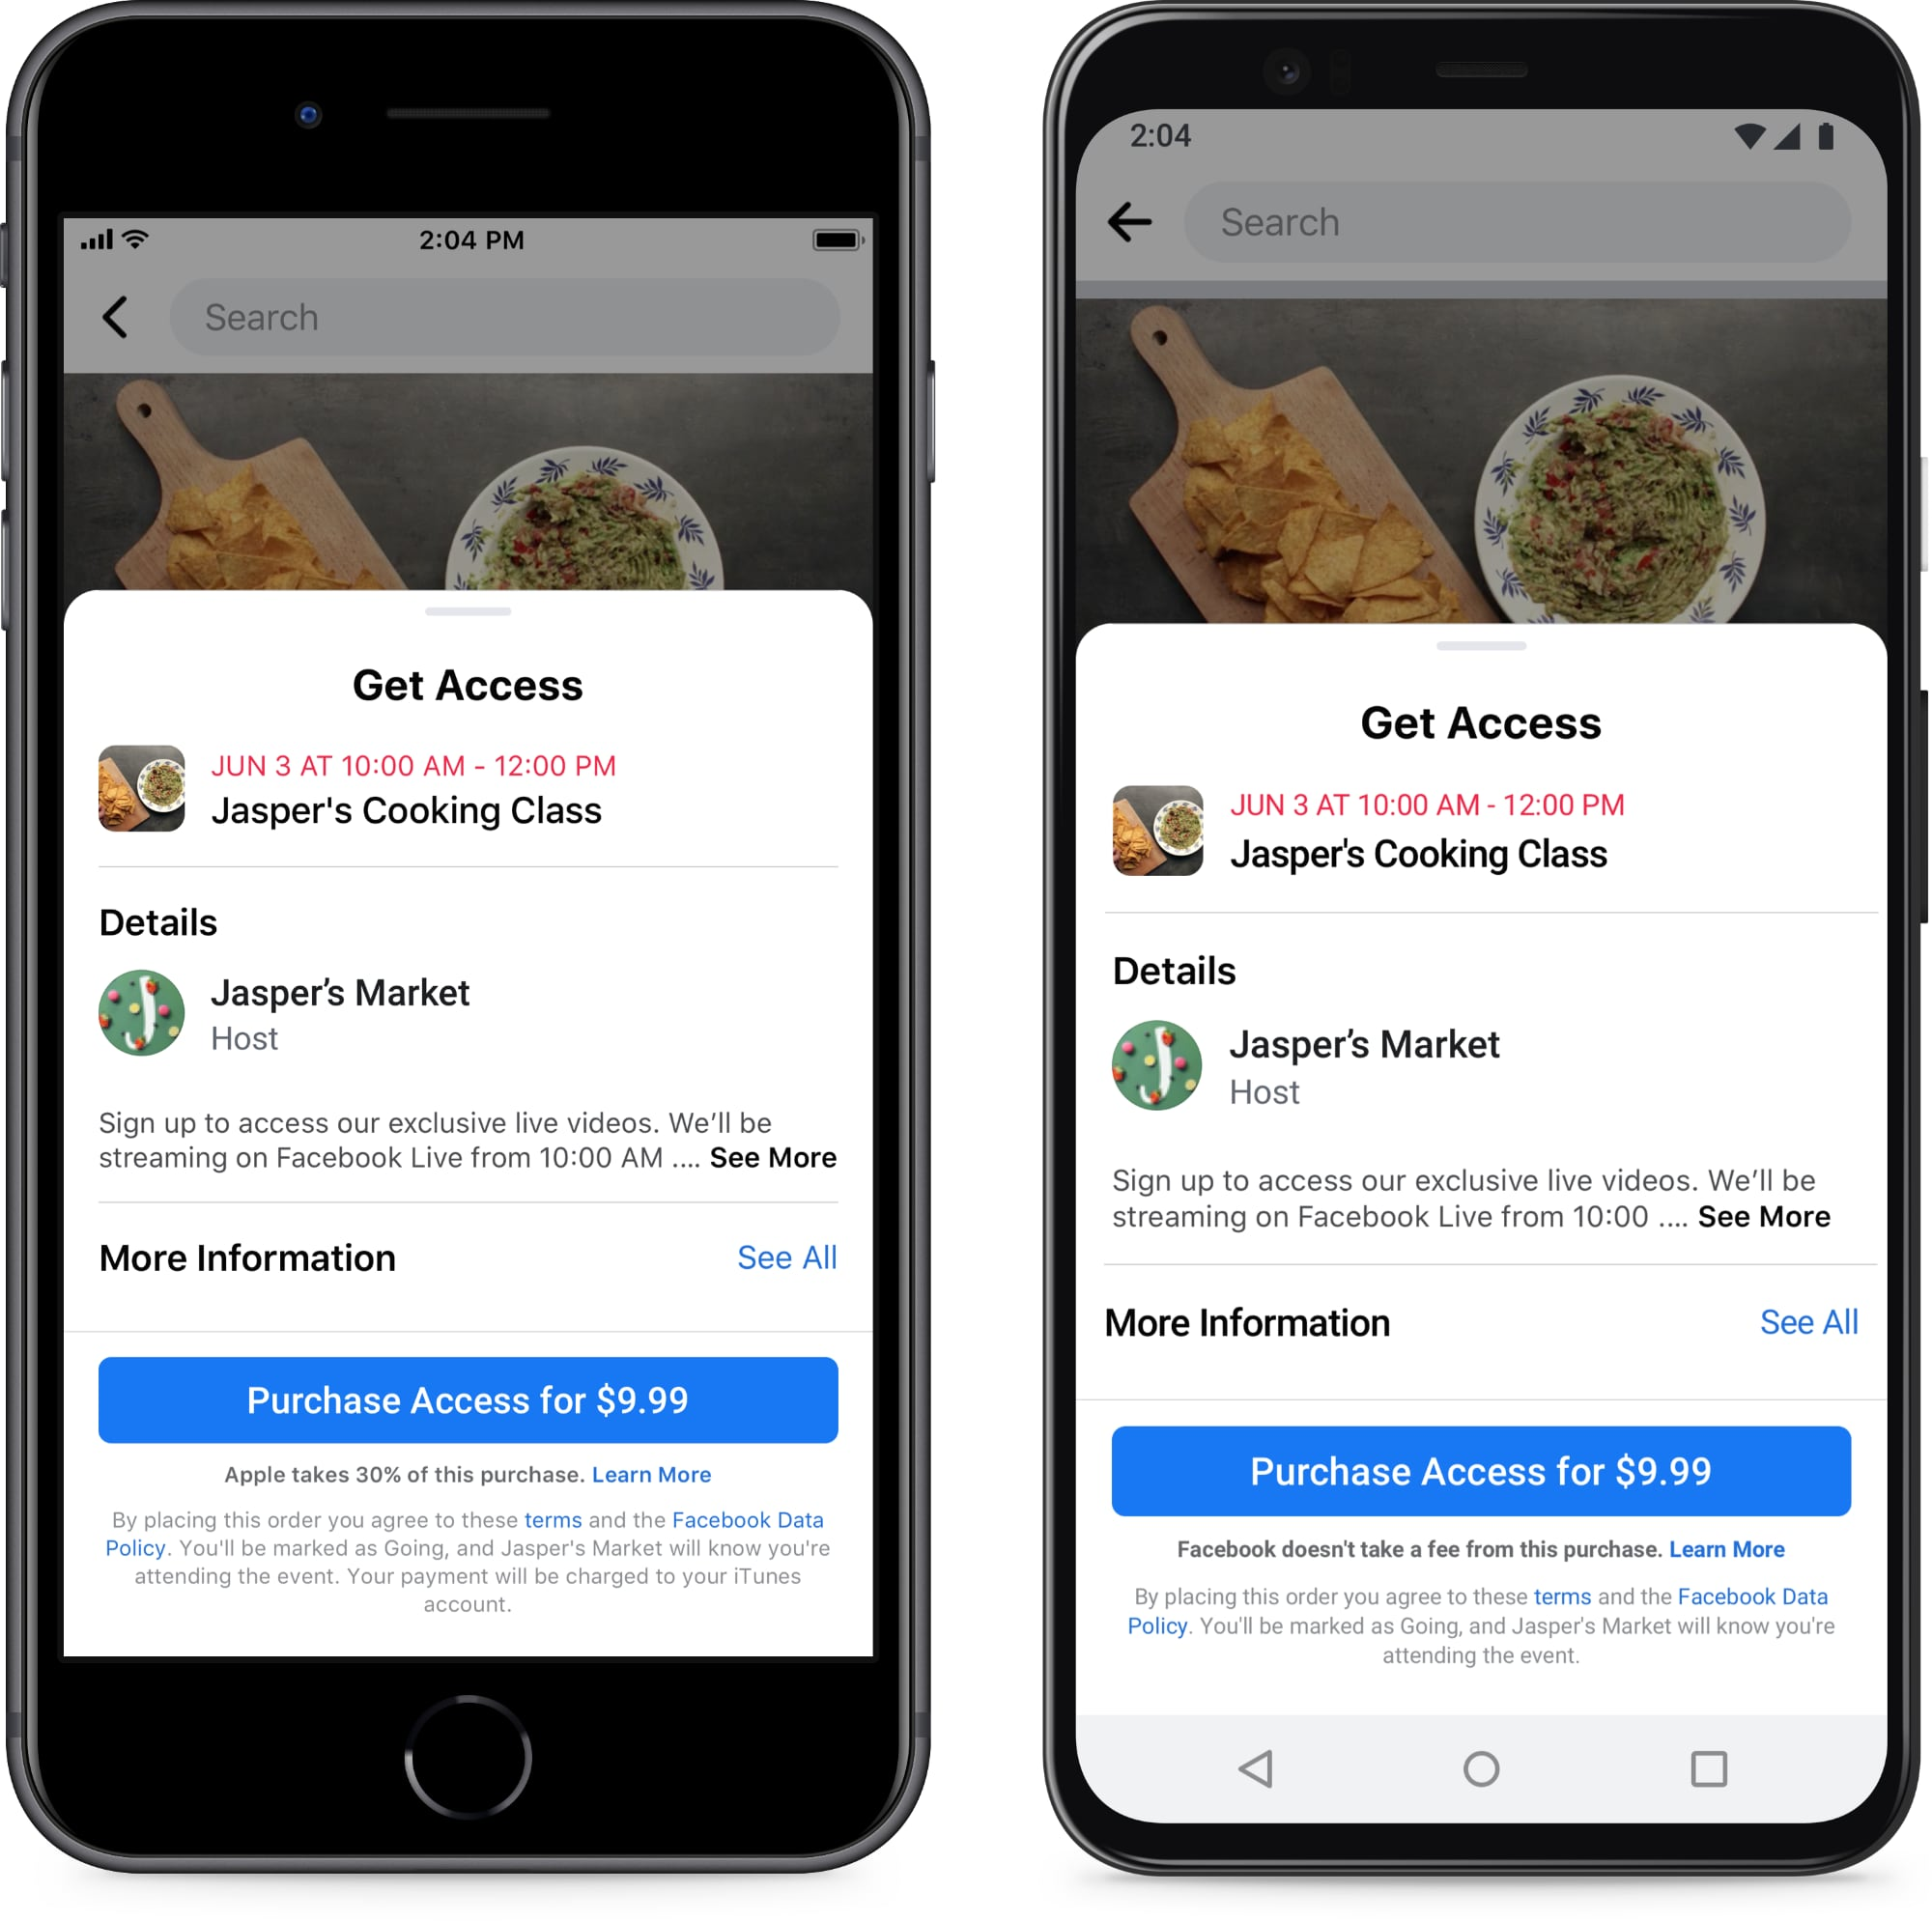 photo of Facebook Claims Apple is Damaging Small Businesses by Collecting Fees From Paid Facebook Events image